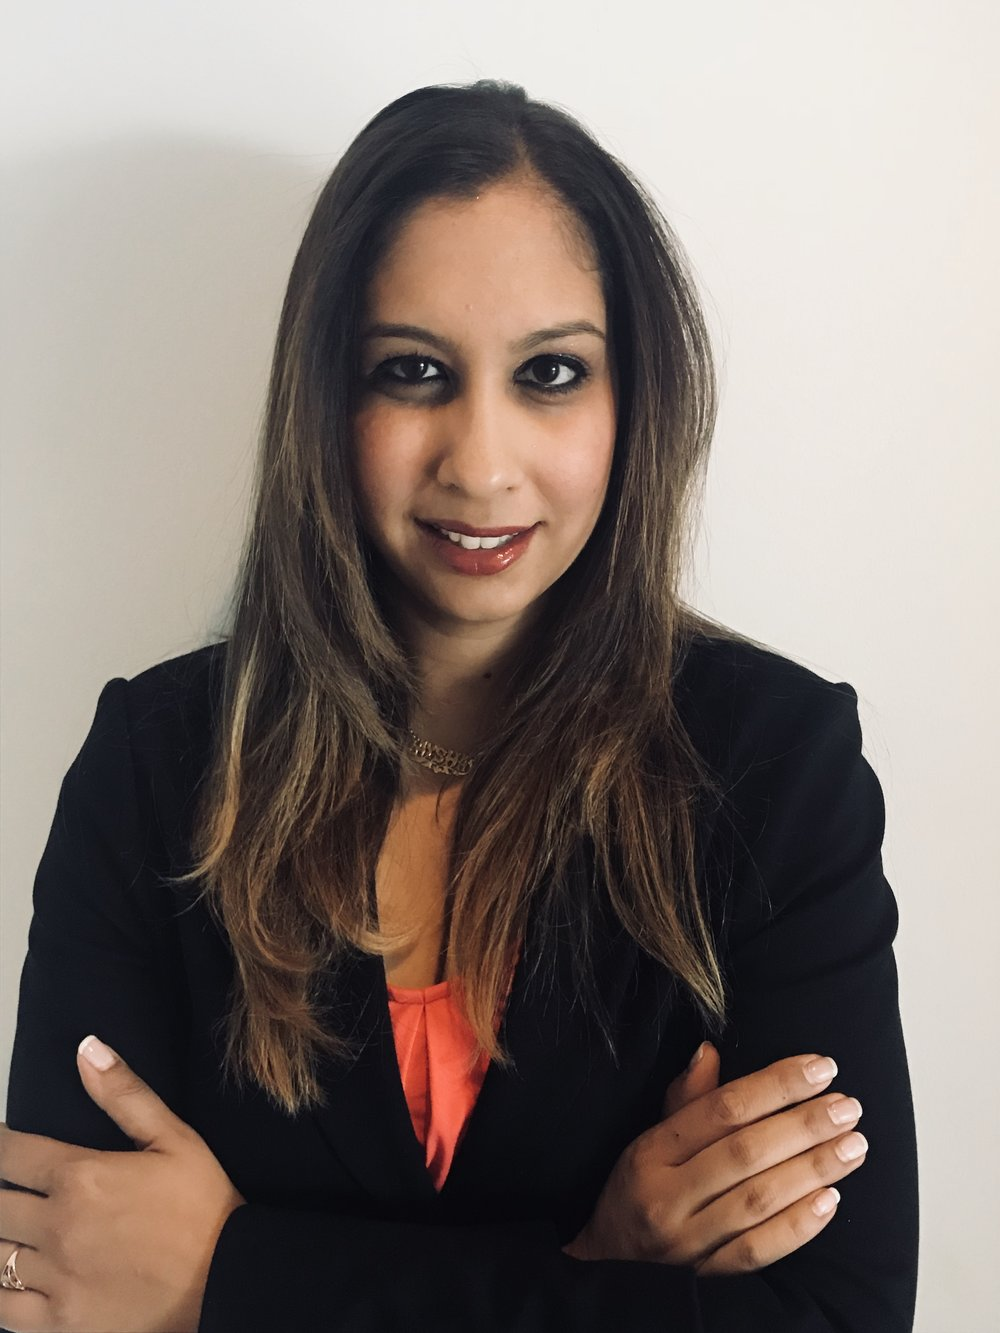 Aysha Hasan MD - Director of Acute Pain and Regional AnesthesiologyDepartment of Anesthesiology and Perioperative PainSt. Christopher's Hospital for Children160 E. Erie Ave. Philadelphia, PA 19134